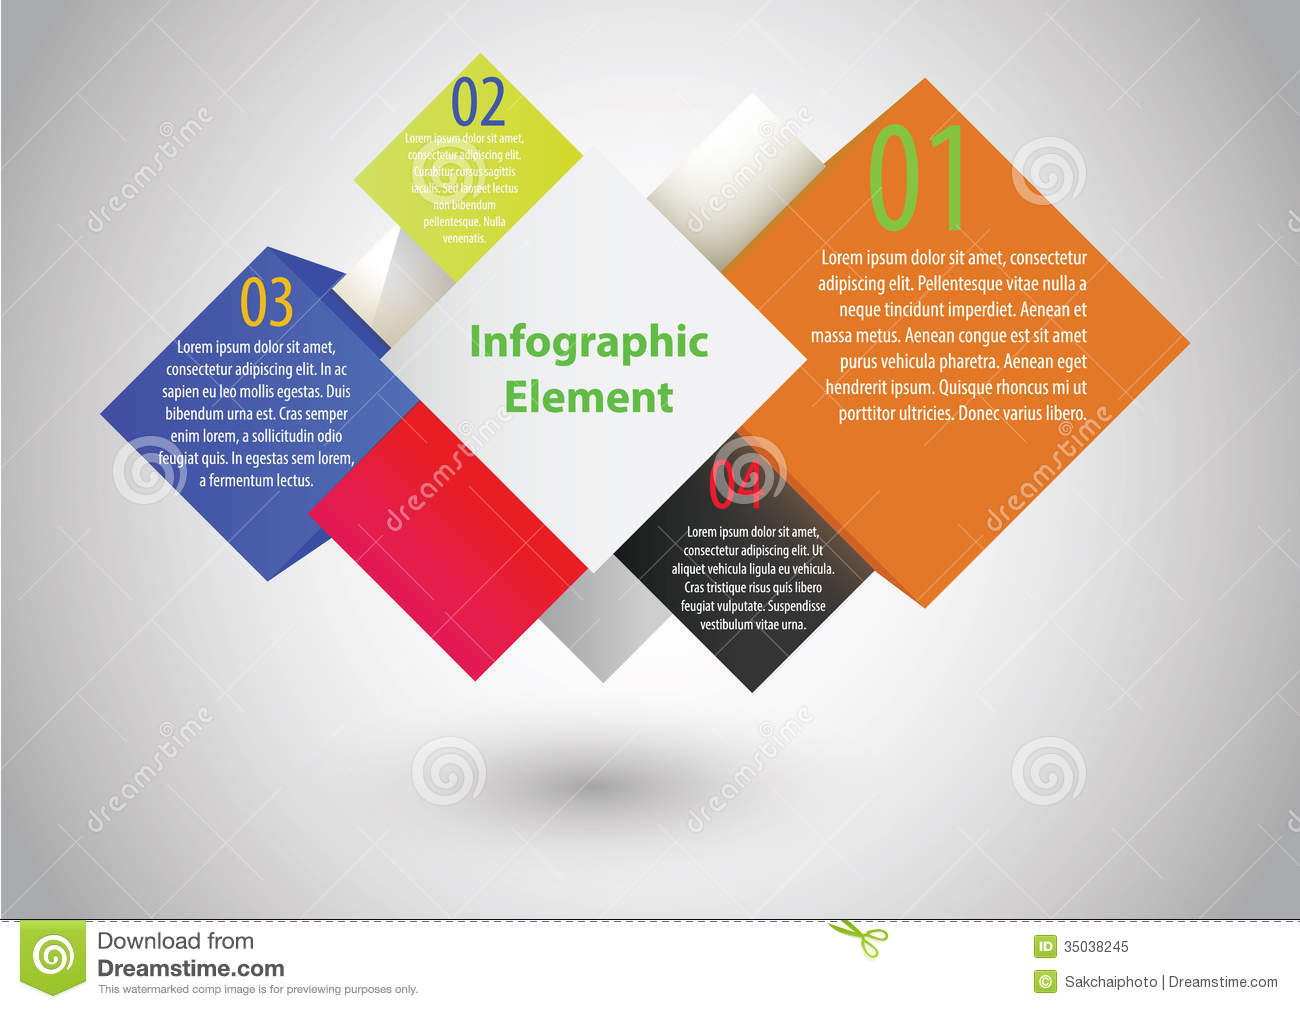 Infographic Element Vector Illustration Stock Vector ...